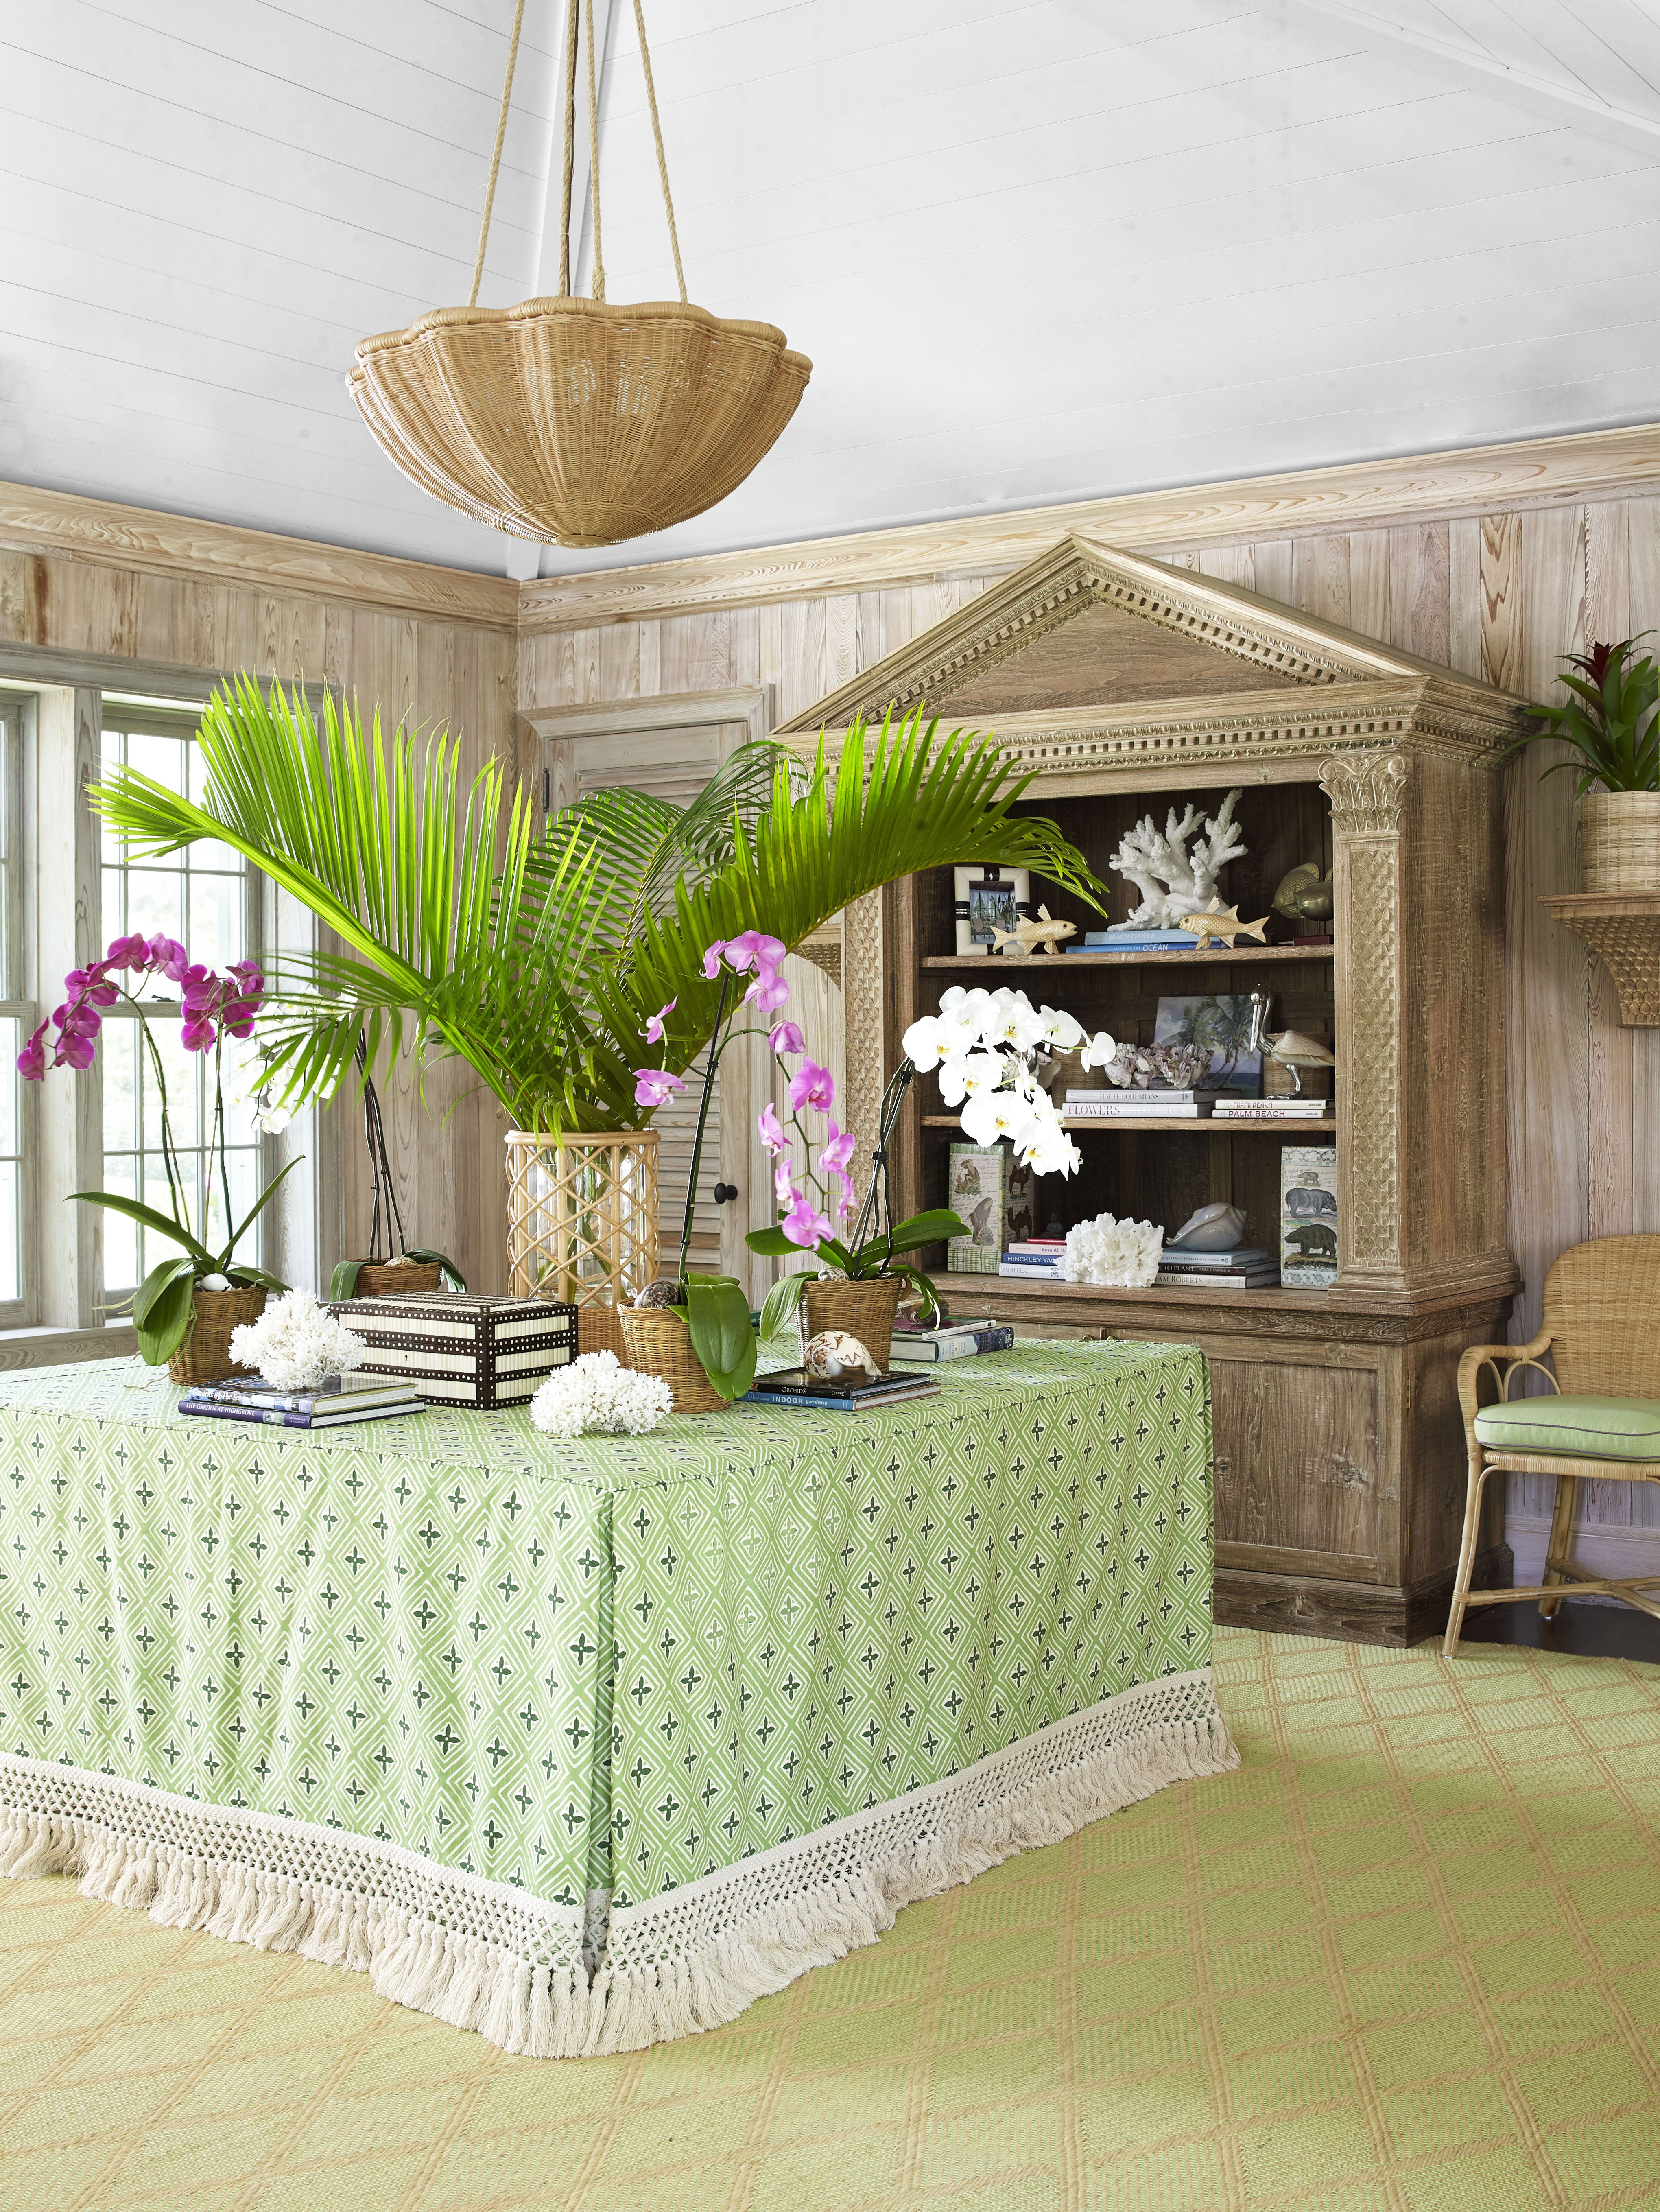 This Palm Beach 'Master Cottage' Is Over the Top